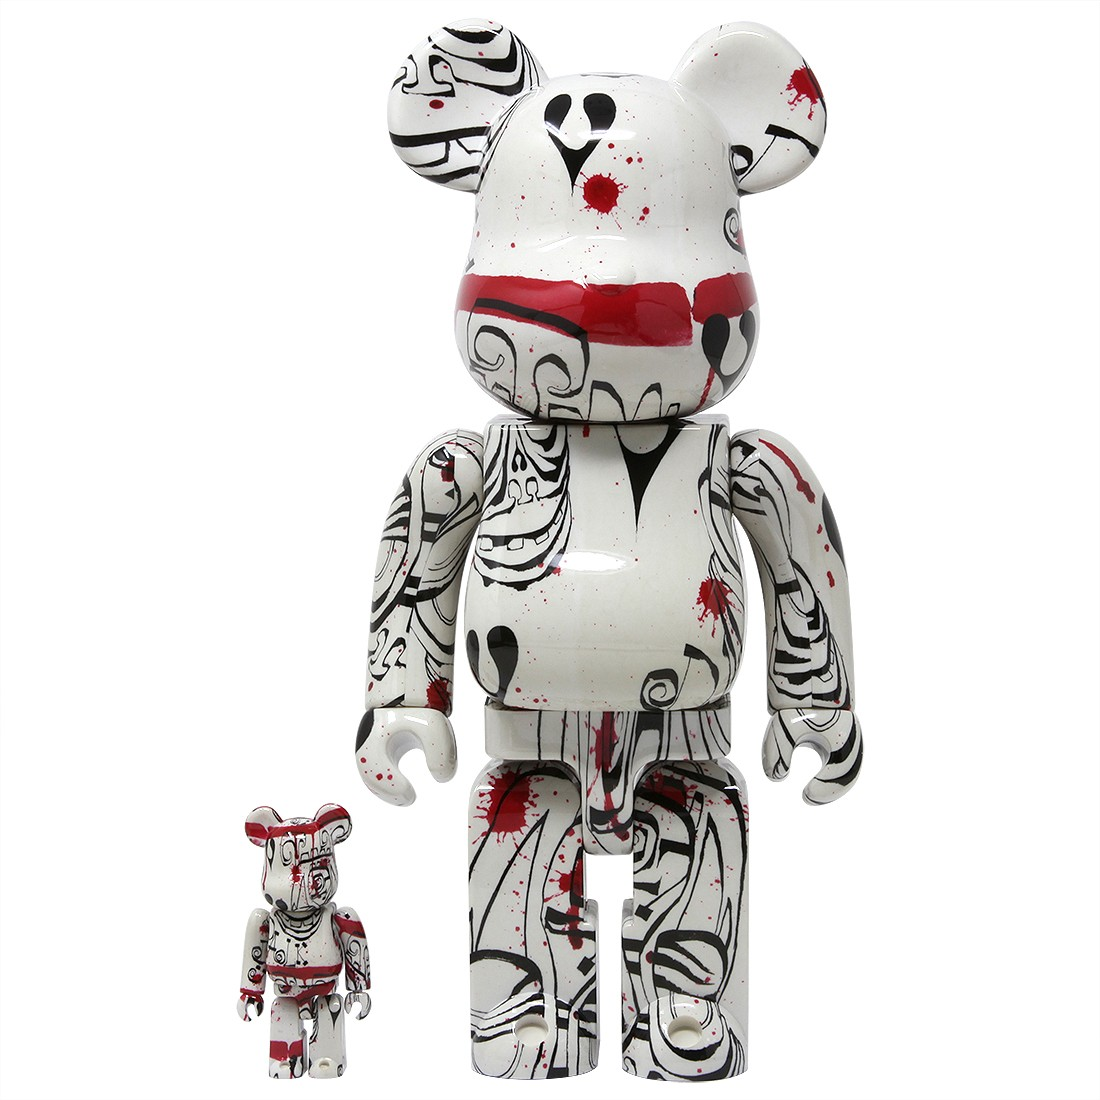 Medicom Phil Frost 2019 Version 100% 400% Bearbrick Figure Set (white)